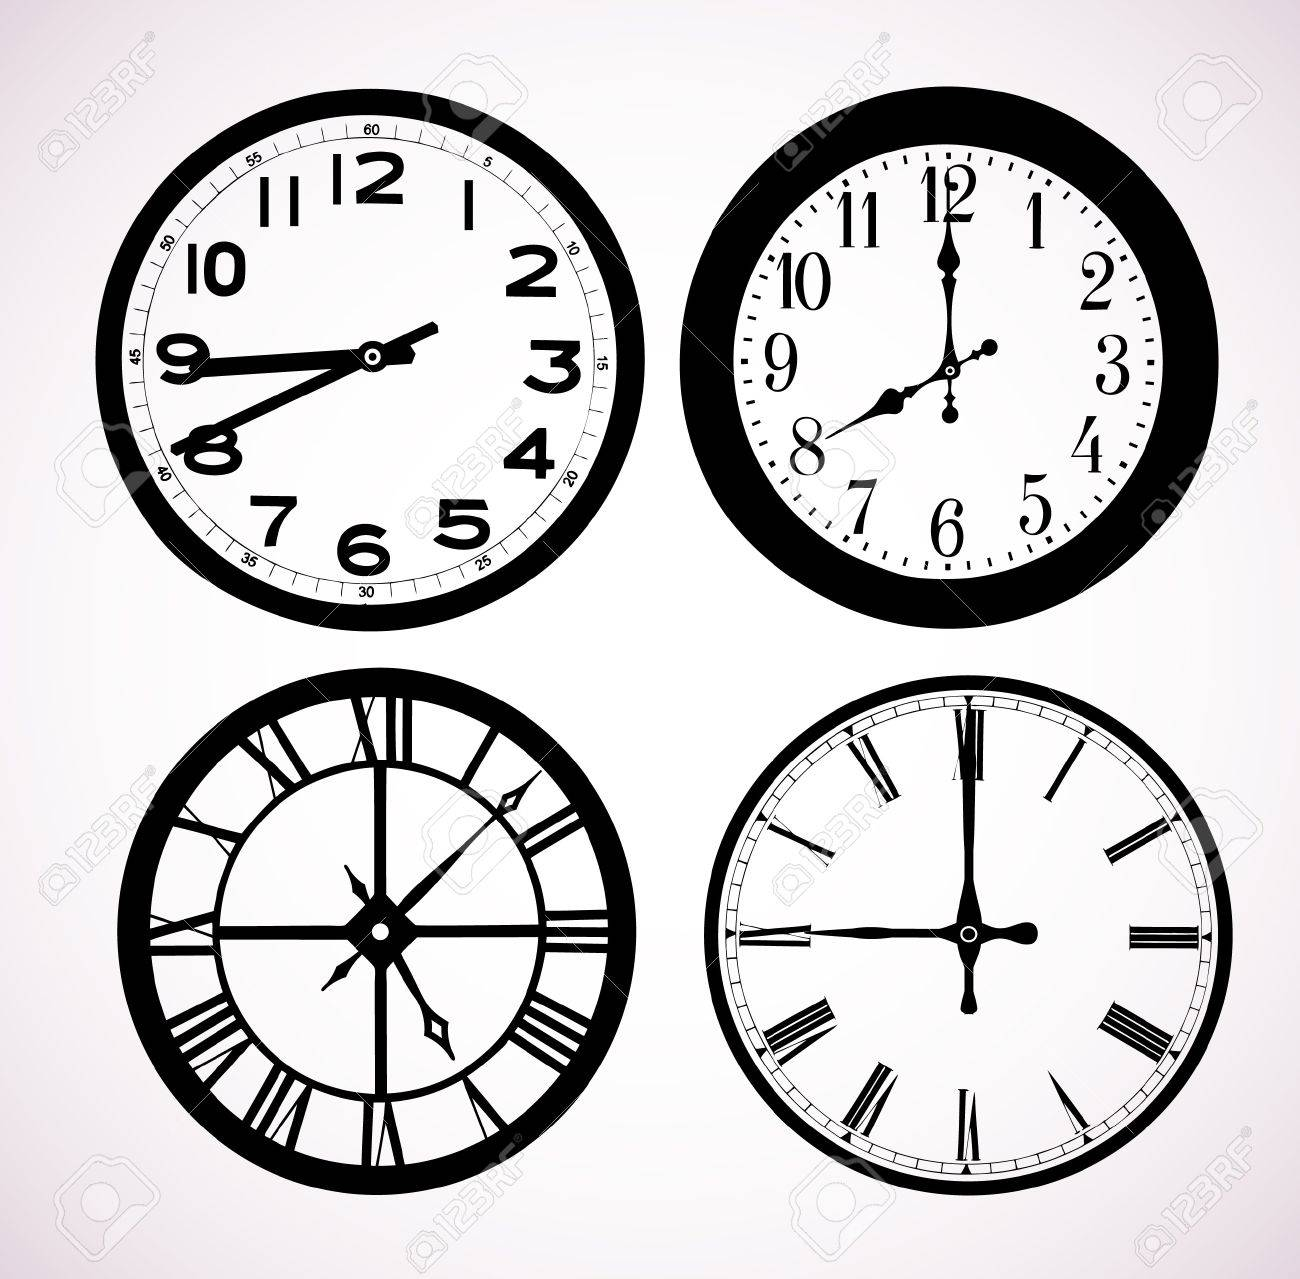 The pictures show a street clock dials Stock Vector - 15888040